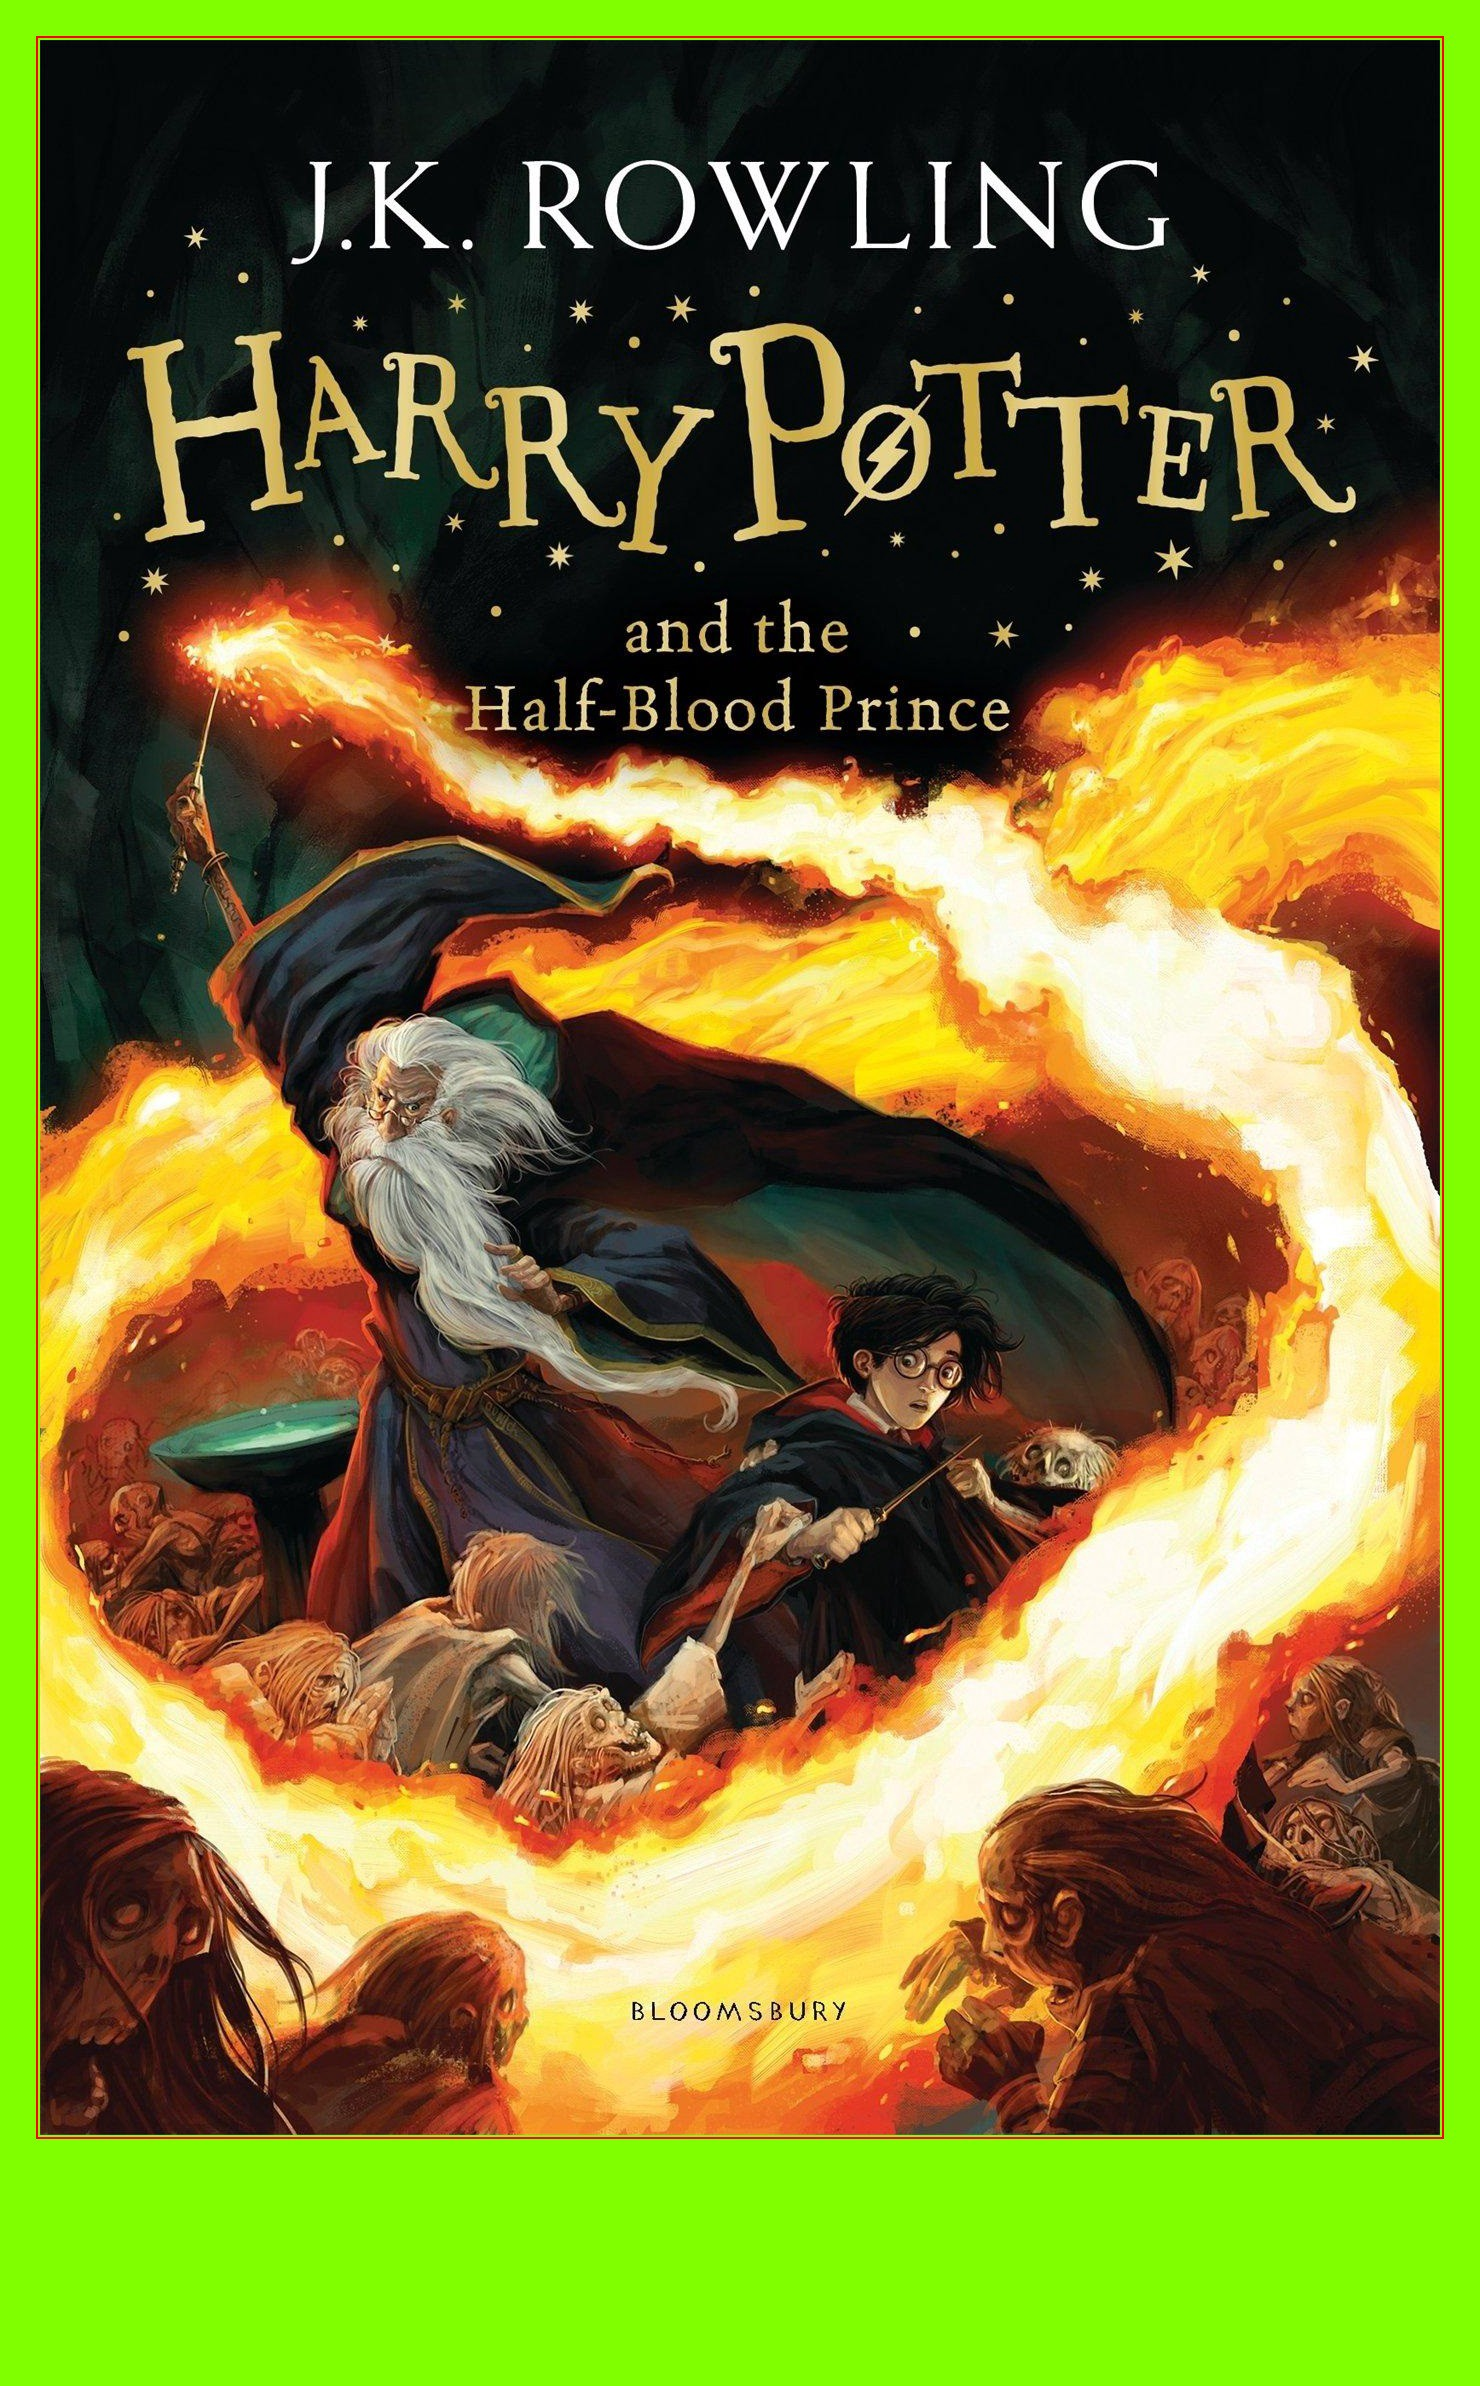 Download Ebook Pdf Harry Potter And The Half Blood Prince 6 7 Harry Potter 6 Download Books Pdf Epub By Uwkoneuqsexnwg Fr6456546456 Jan 2021 Medium